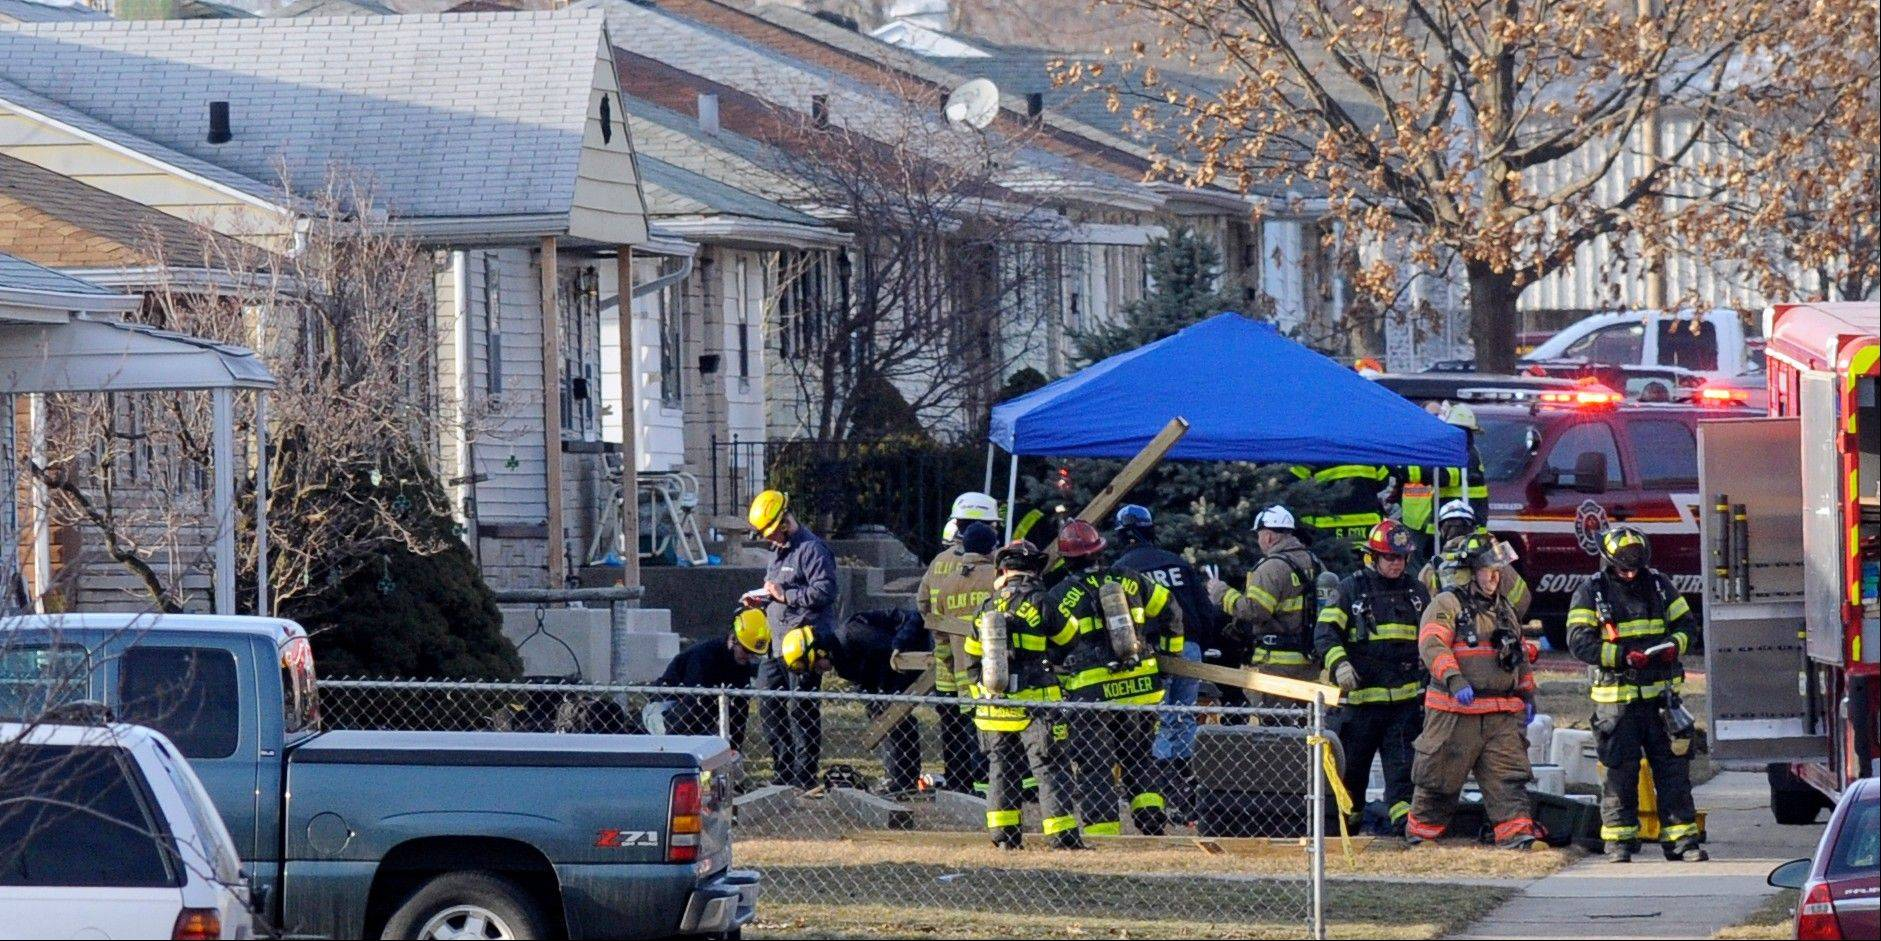 South Bend police and fire officials examine a home where a plane crash occurred near the South Bend Regional Airport Sunday in South Bend, Ind.